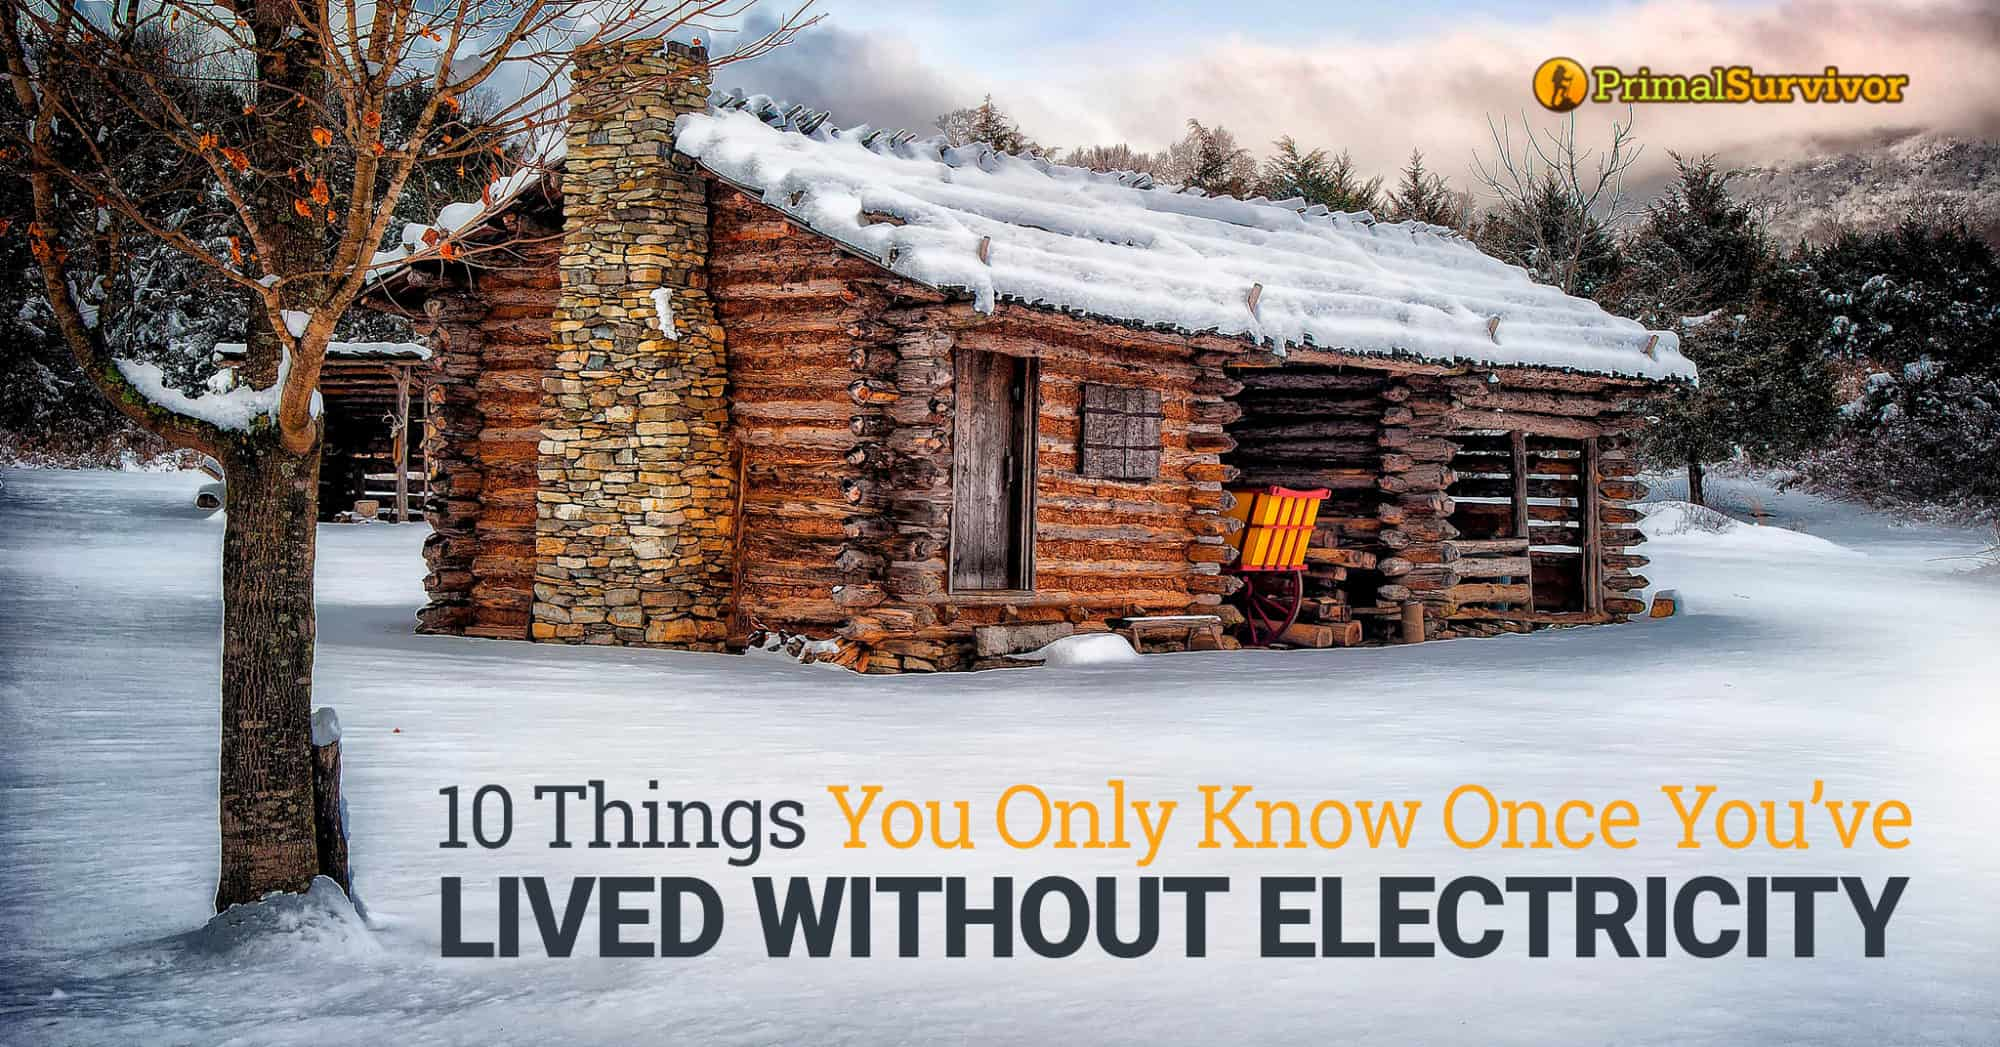 10 Things You Only Know Once You've Lived without Electricity post image